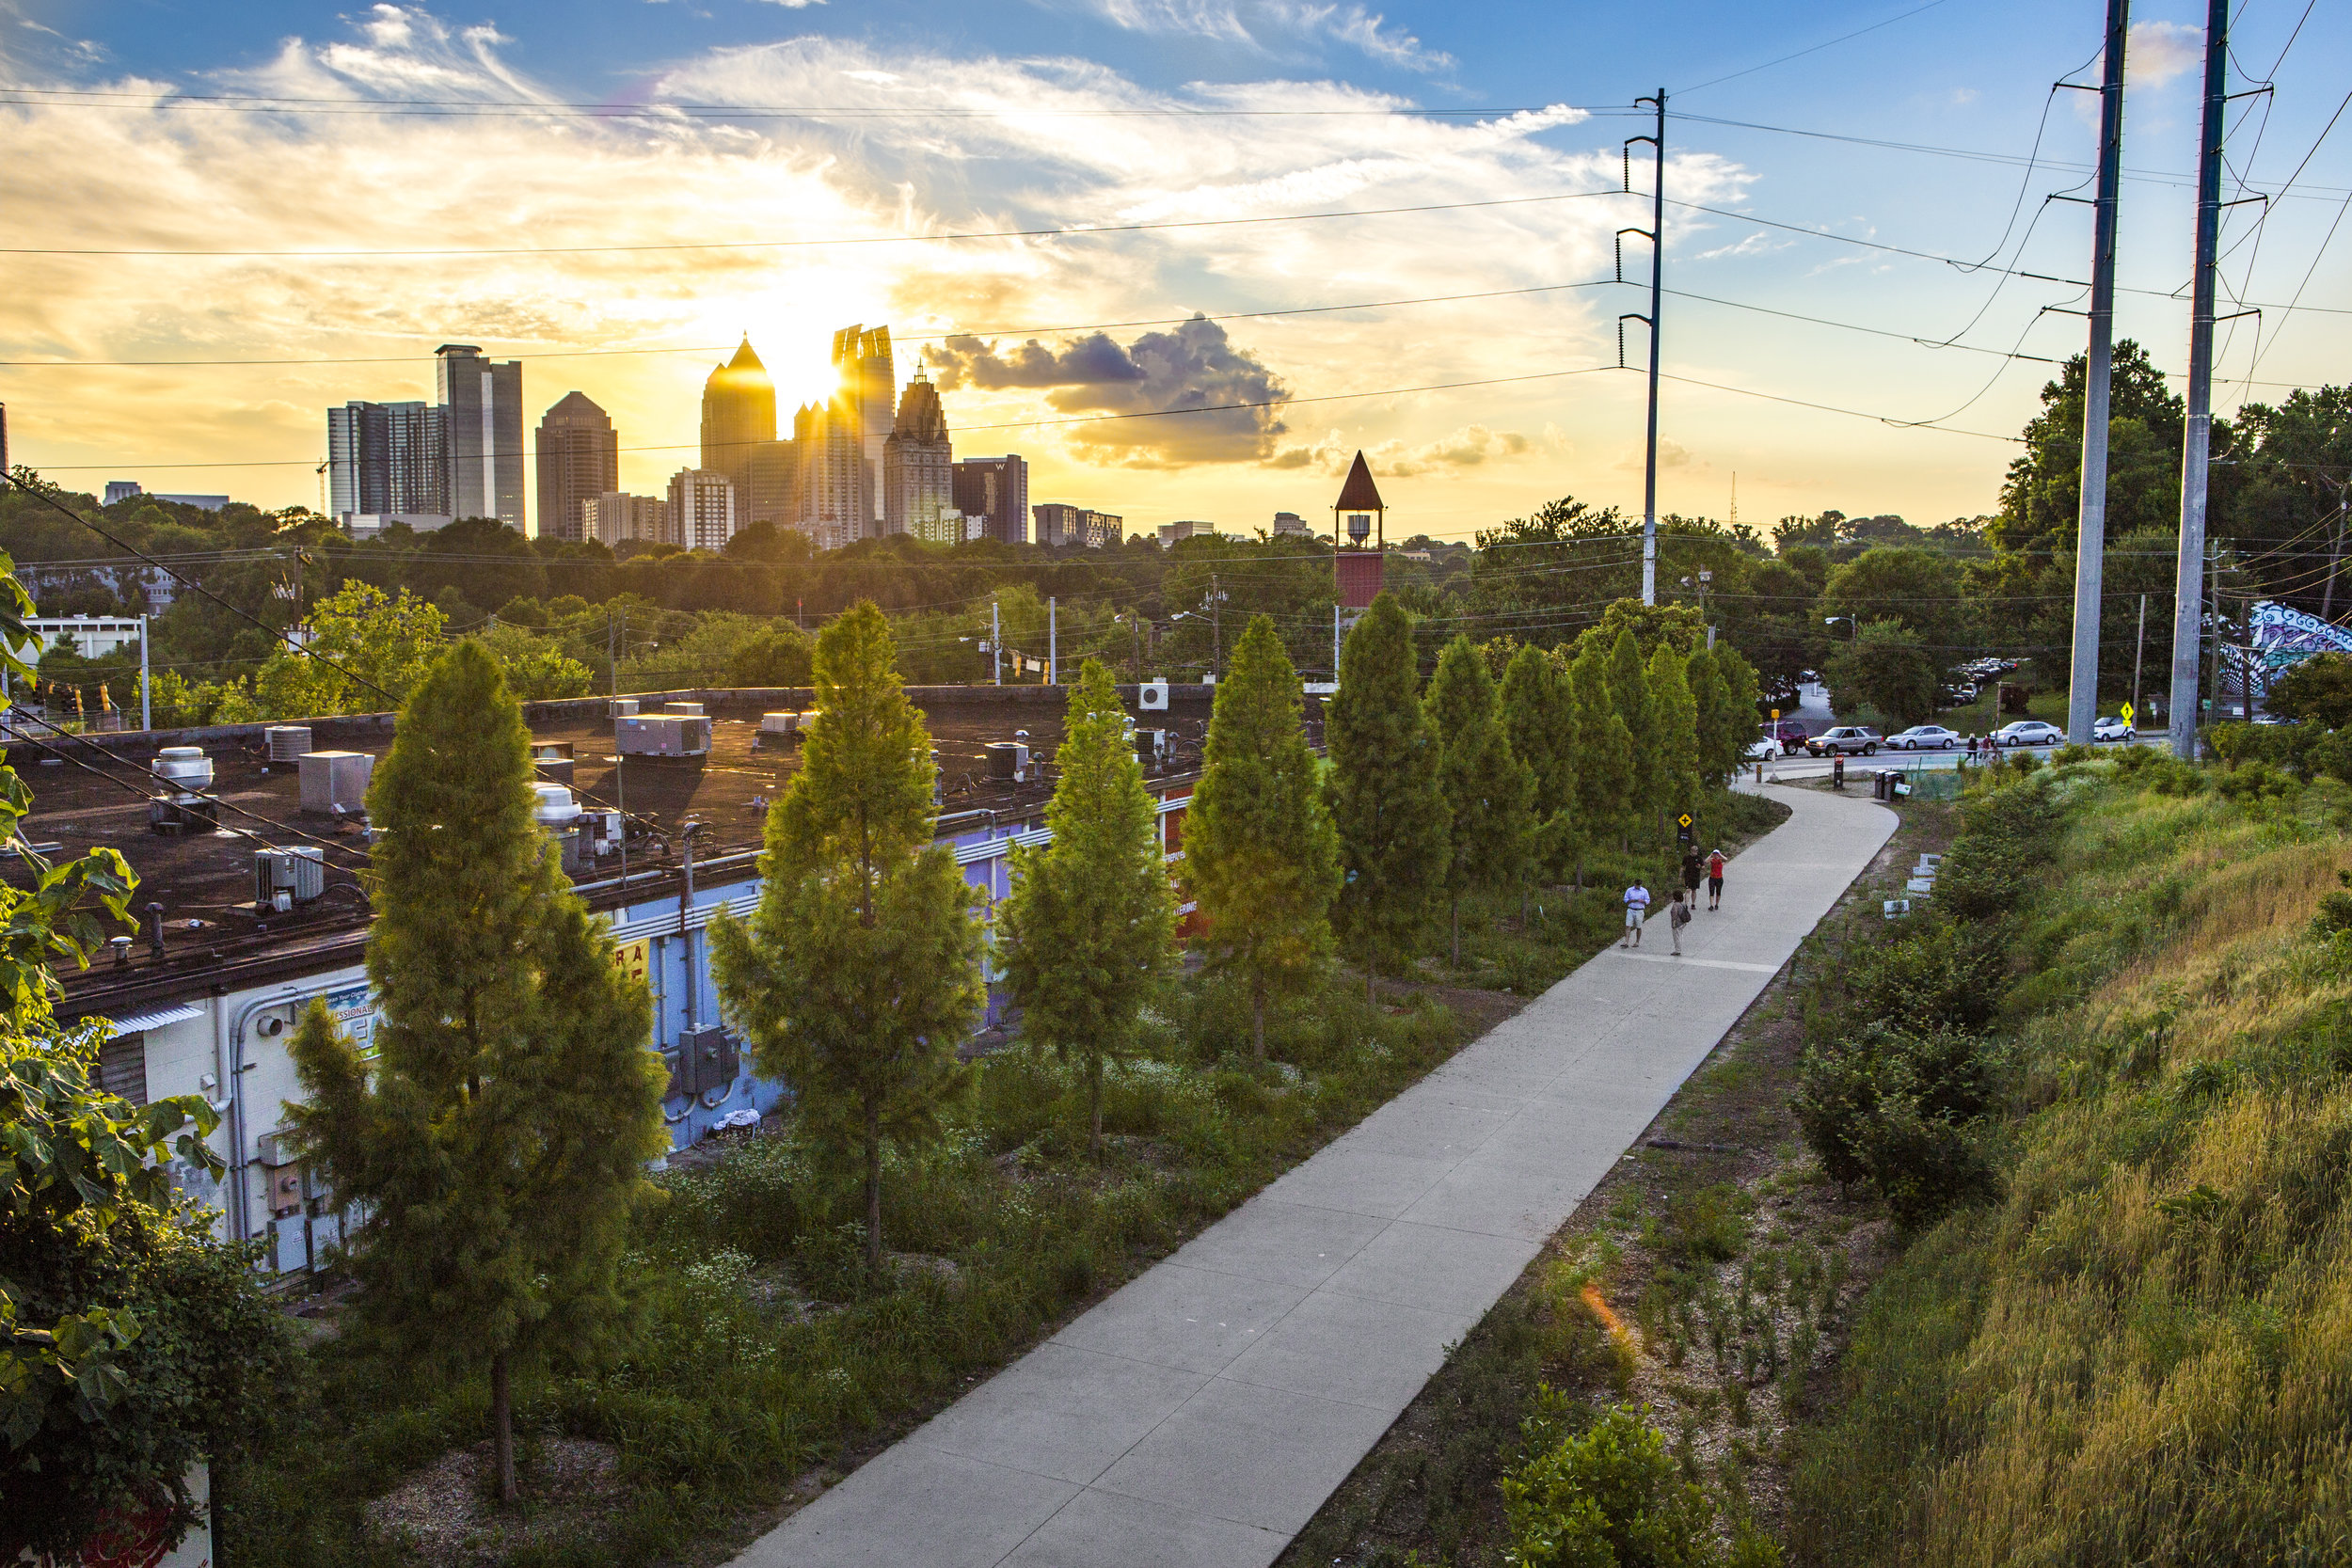 Public SPaces - Astra is one of the largest builders of parks and recreation facilities in the Southeast. Our experience in building the urban outdoor spaces that bring communities together is unmatched. Our successful projects on groundbreaking projects like the Atlanta BeltLine have solidified our reputation as the go to builder for creating spaces that enhance communities.